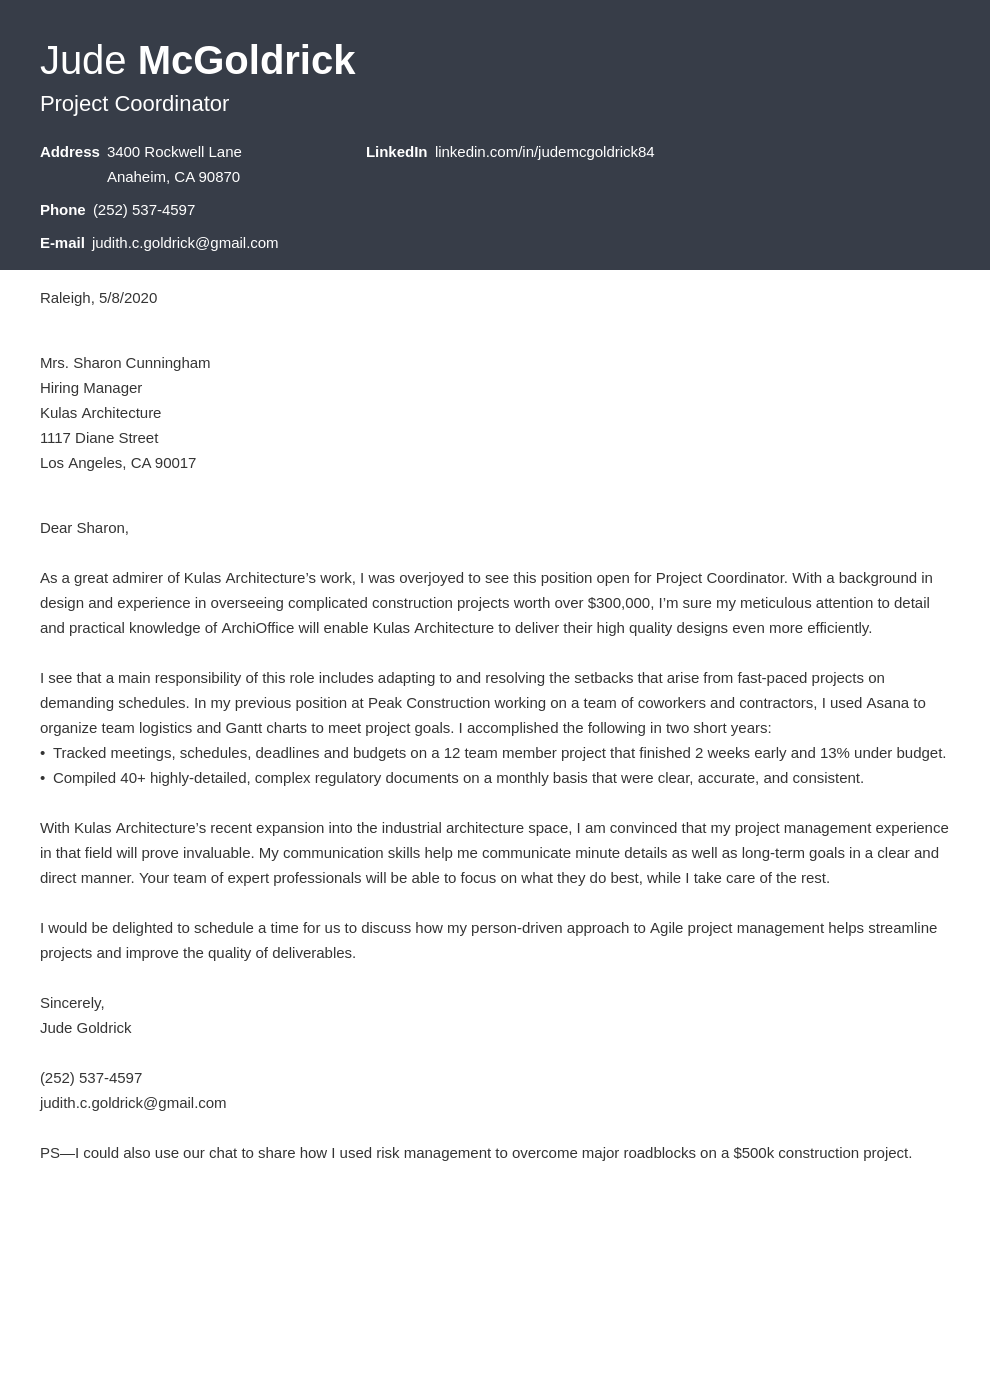 Project Coordinator Cover Letter Samples Writing Guide